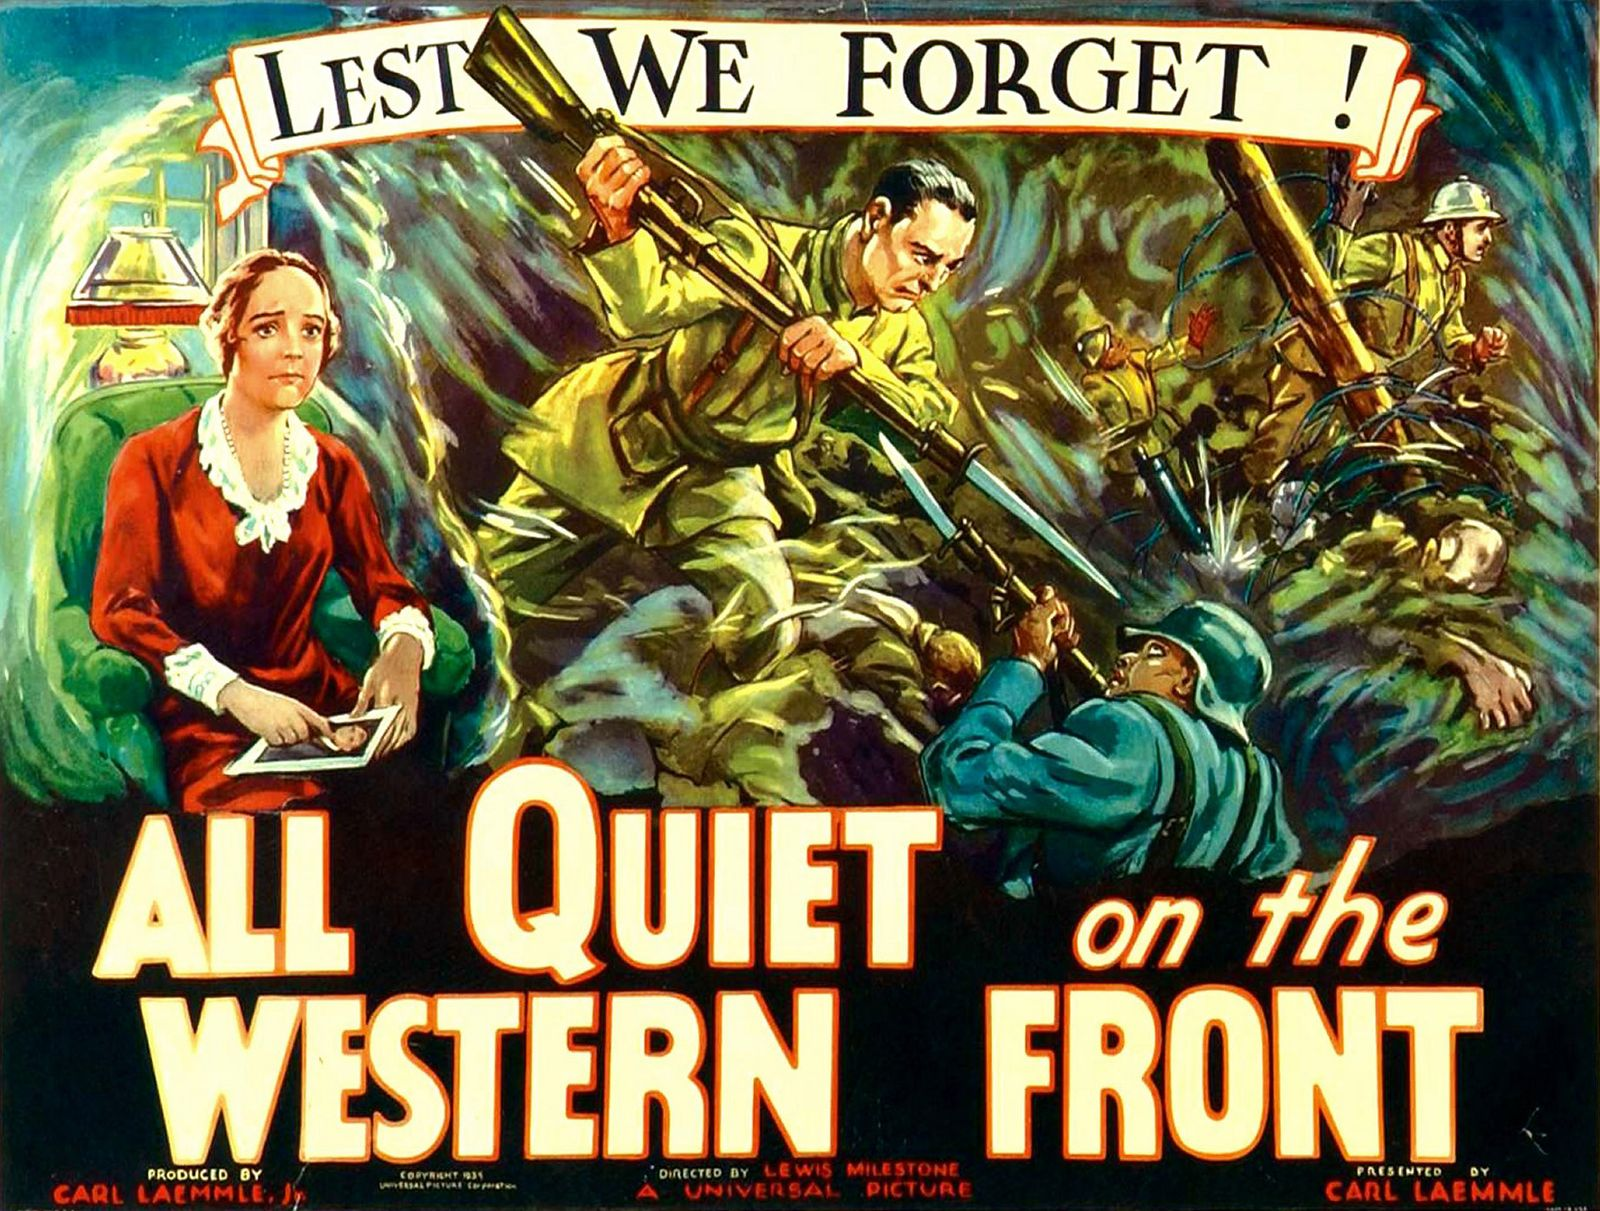 ALL QUIET ON THE WESTERN FRONT, poster art, 1930.